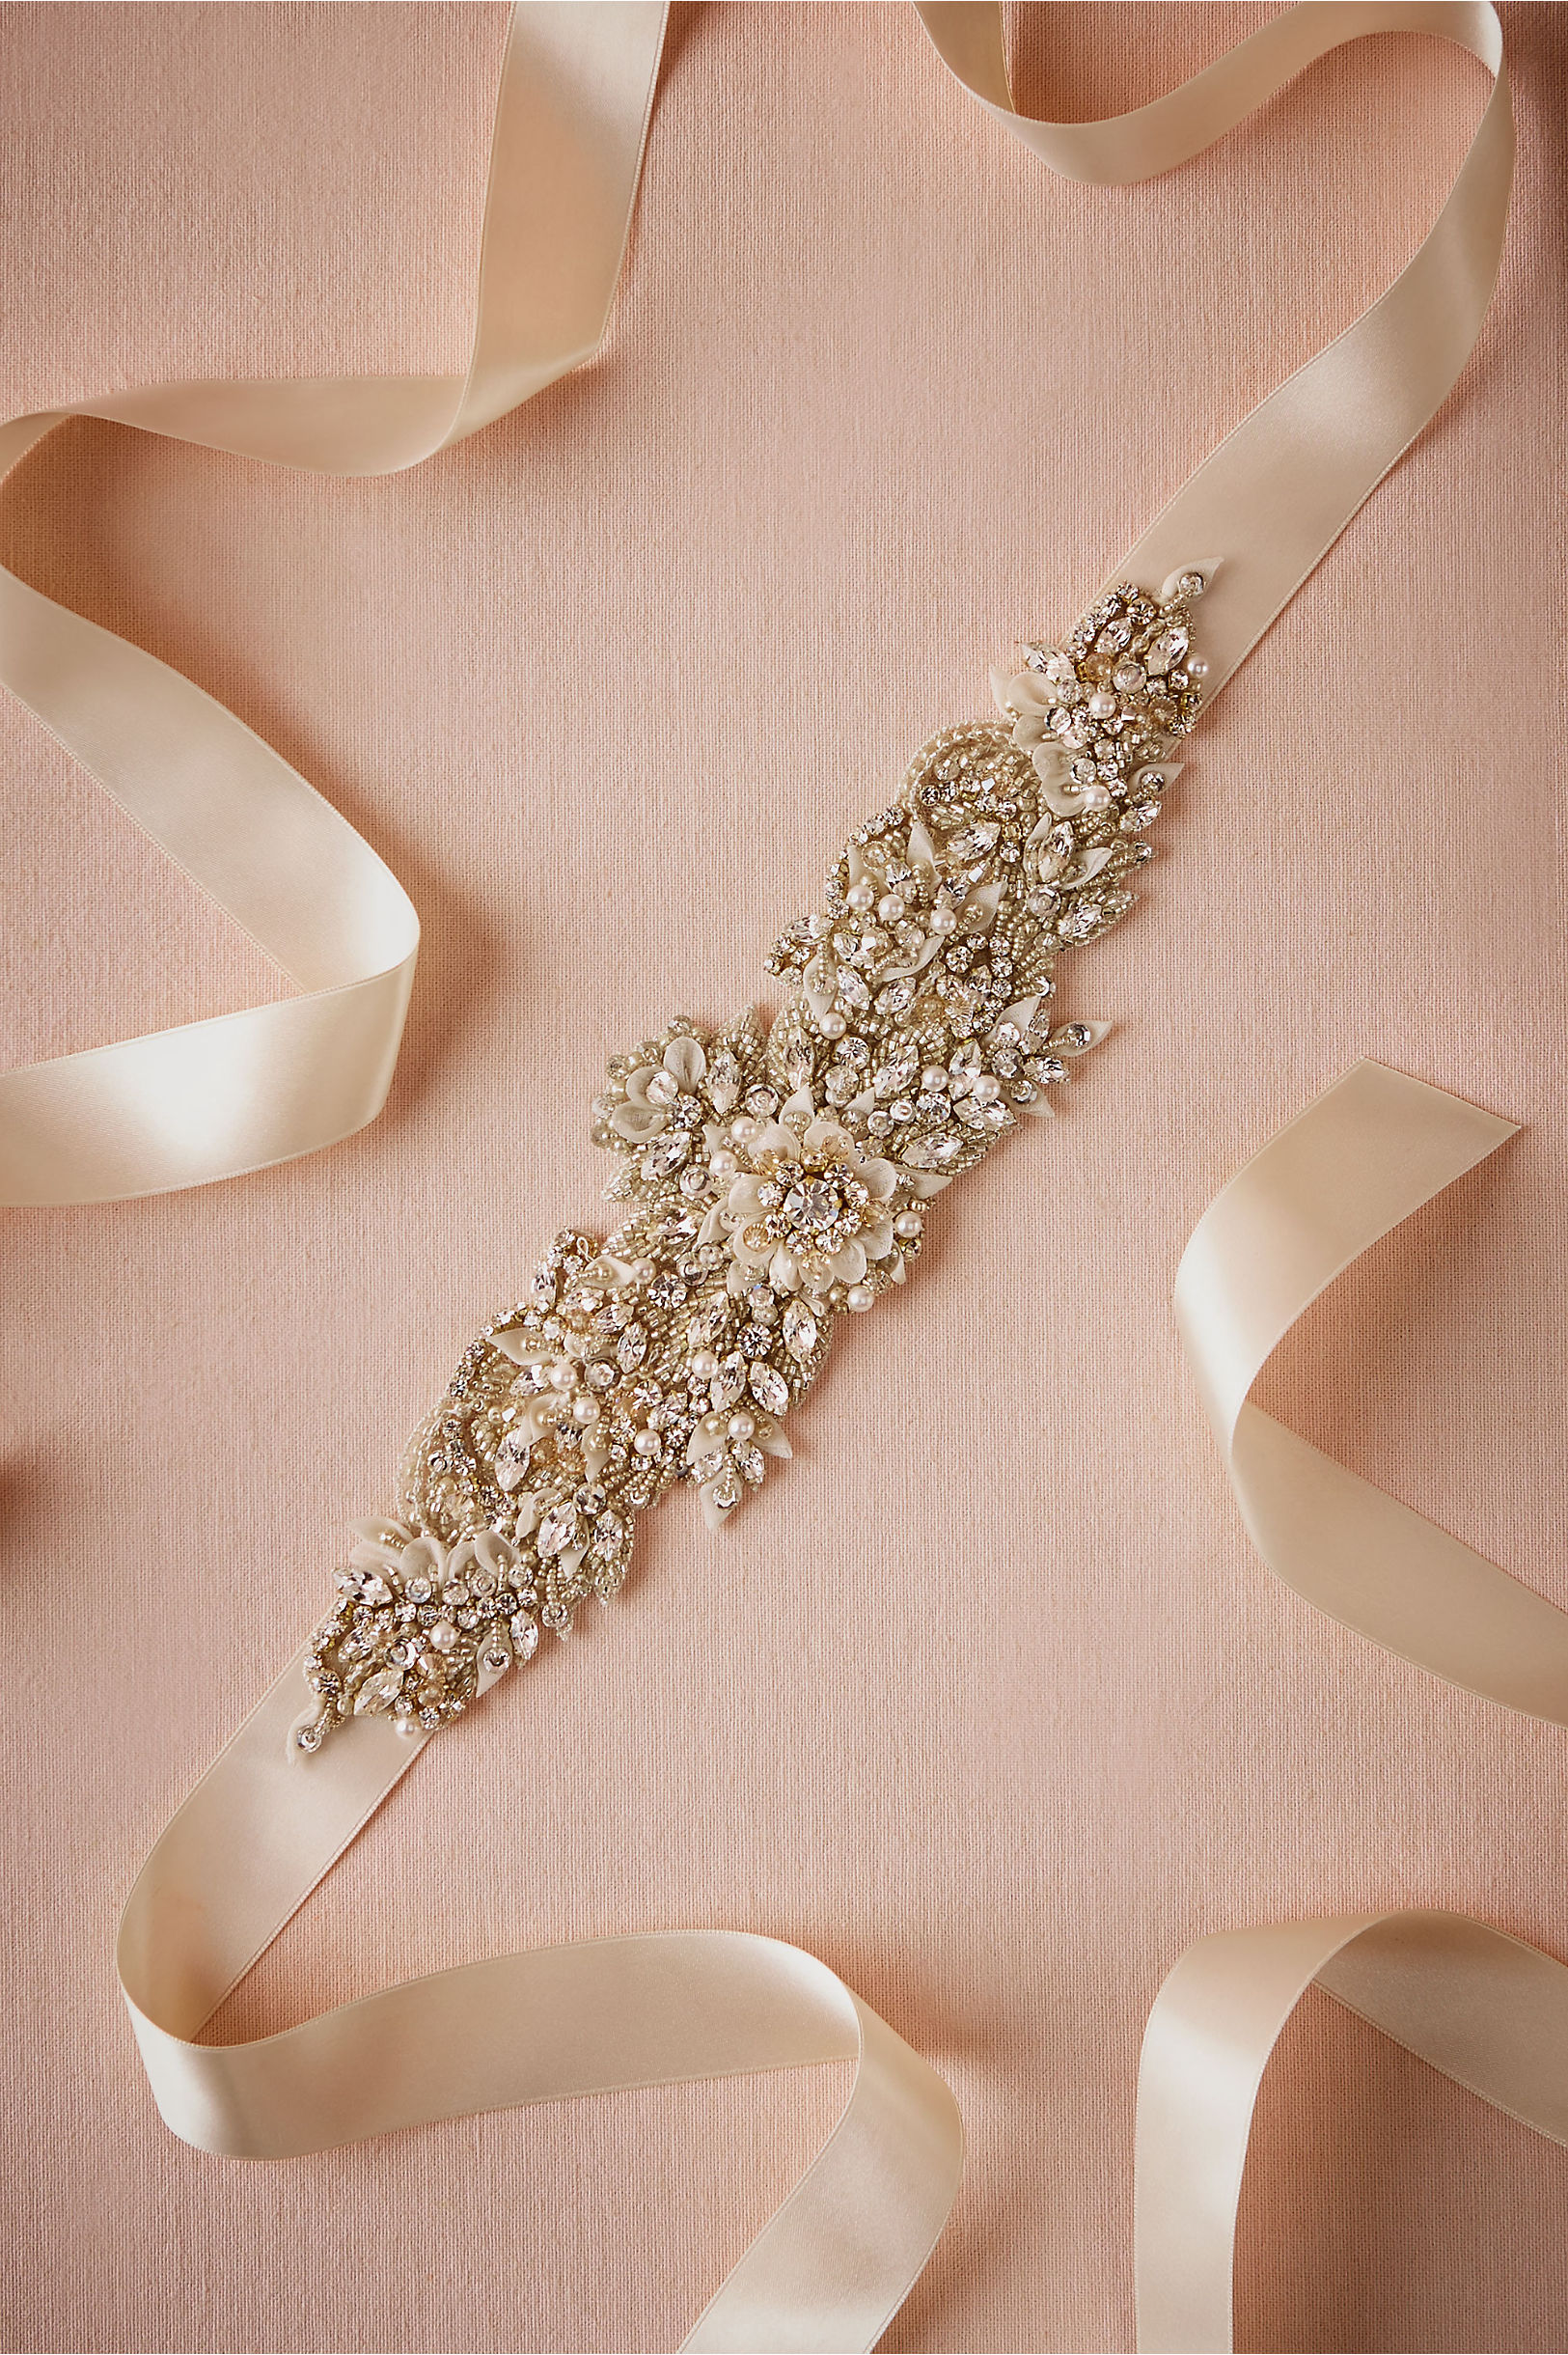 veils accessories belts sashes belts for wedding dresses Le Champagne Sash